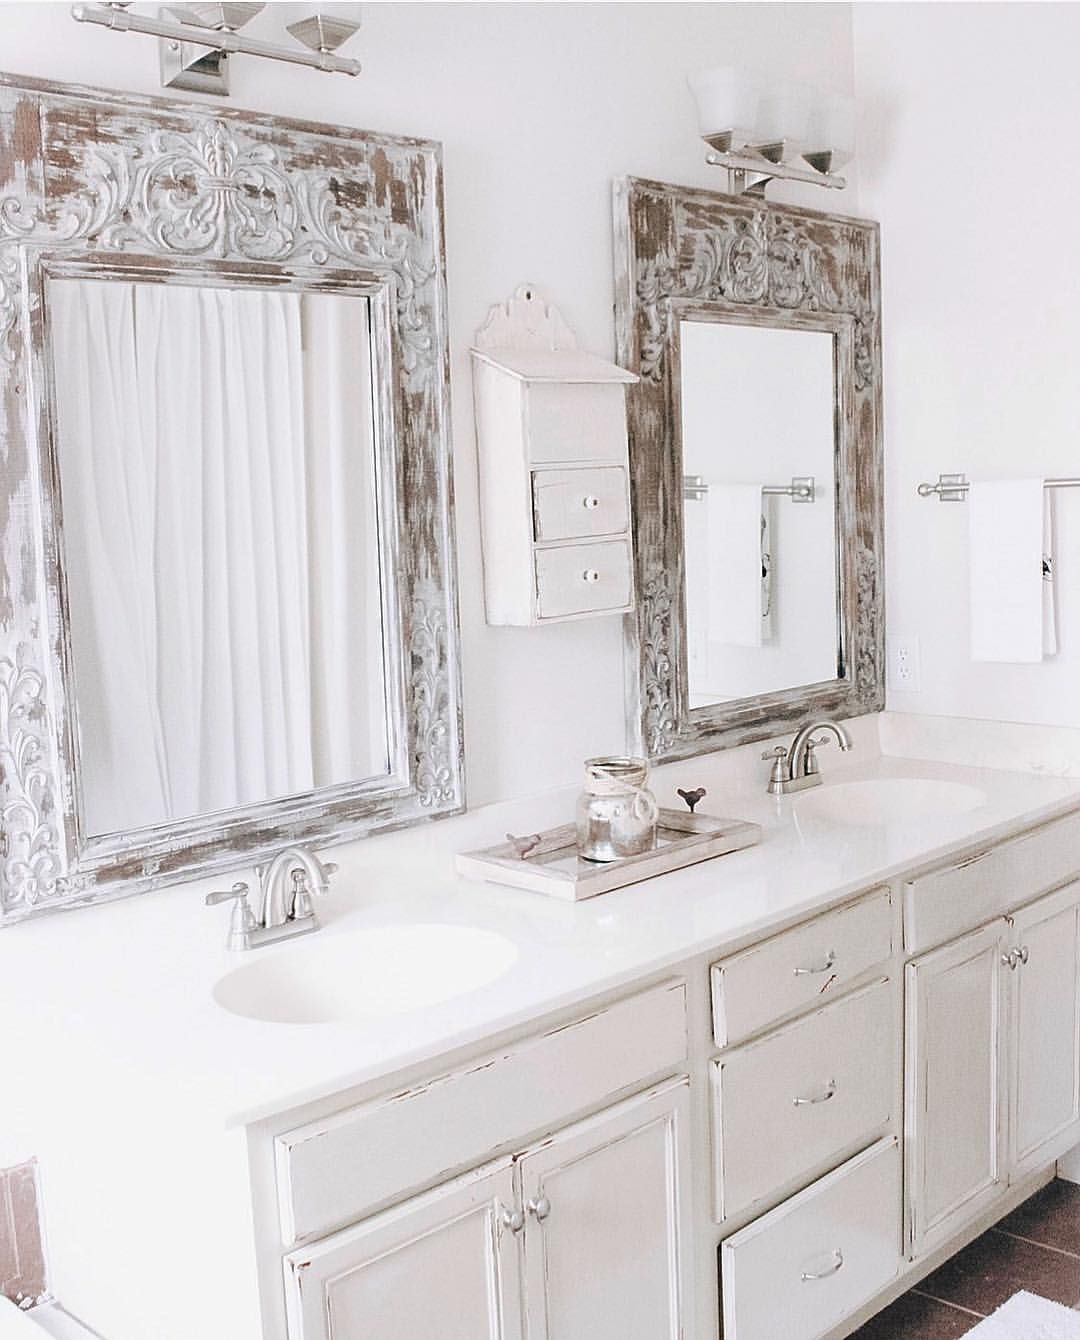 Flashbackfriday to our first redone DIY master bath. I